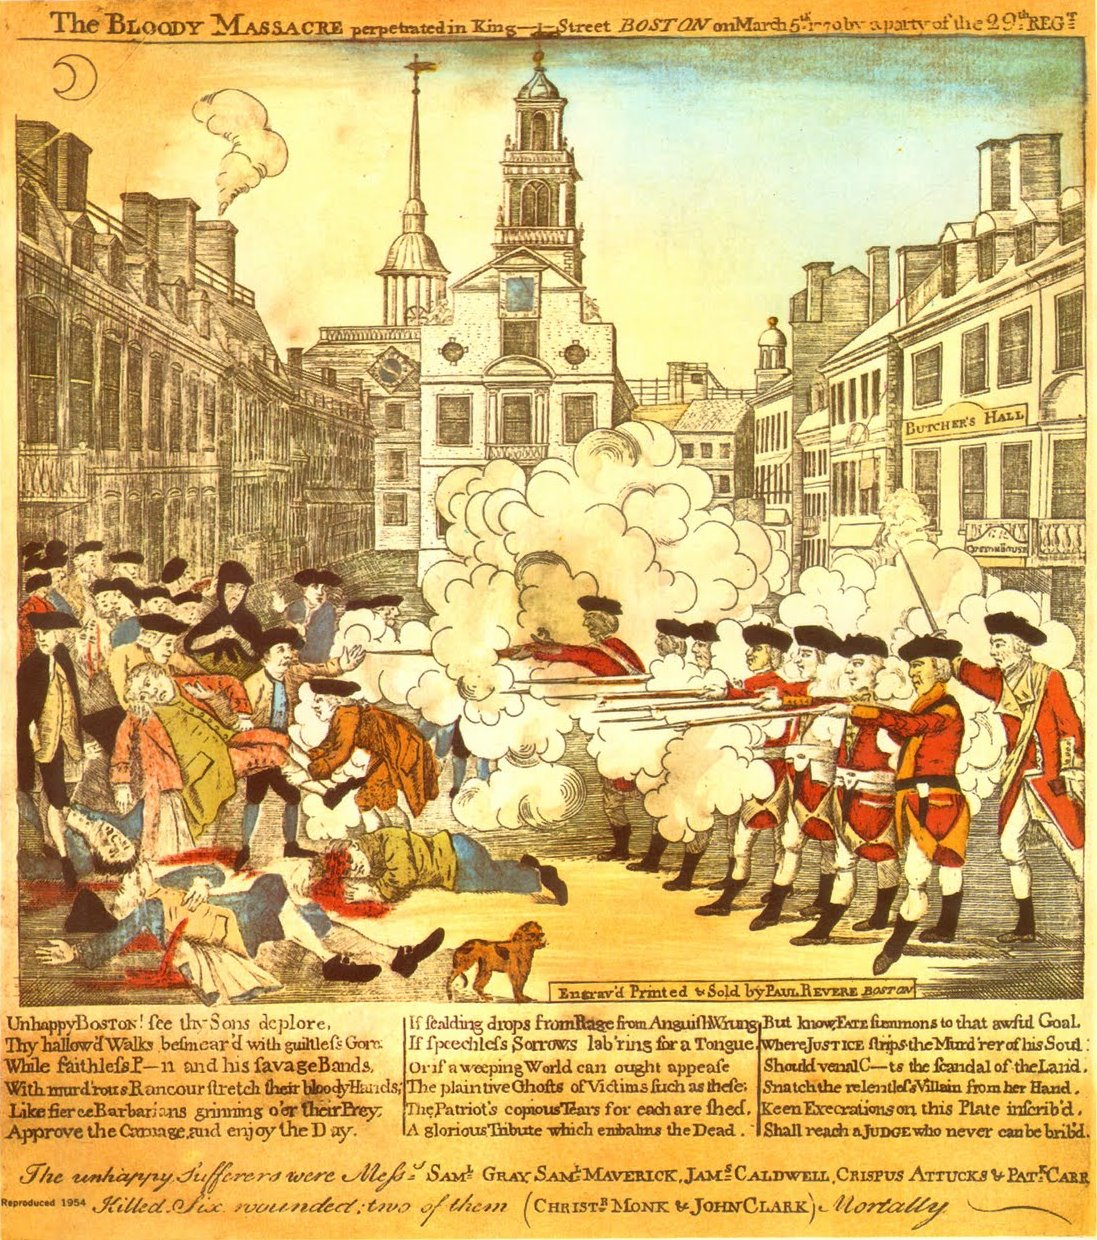 the boston massacre The boston massacre was the killing of five colonists by british soldiers on march 5, 1770 it was the culmination of civilian-military tensions that had been growing since royal troops first appeared in massachusetts in october 1768 to enforce the heavy tax burden imposed by the townshend acts.